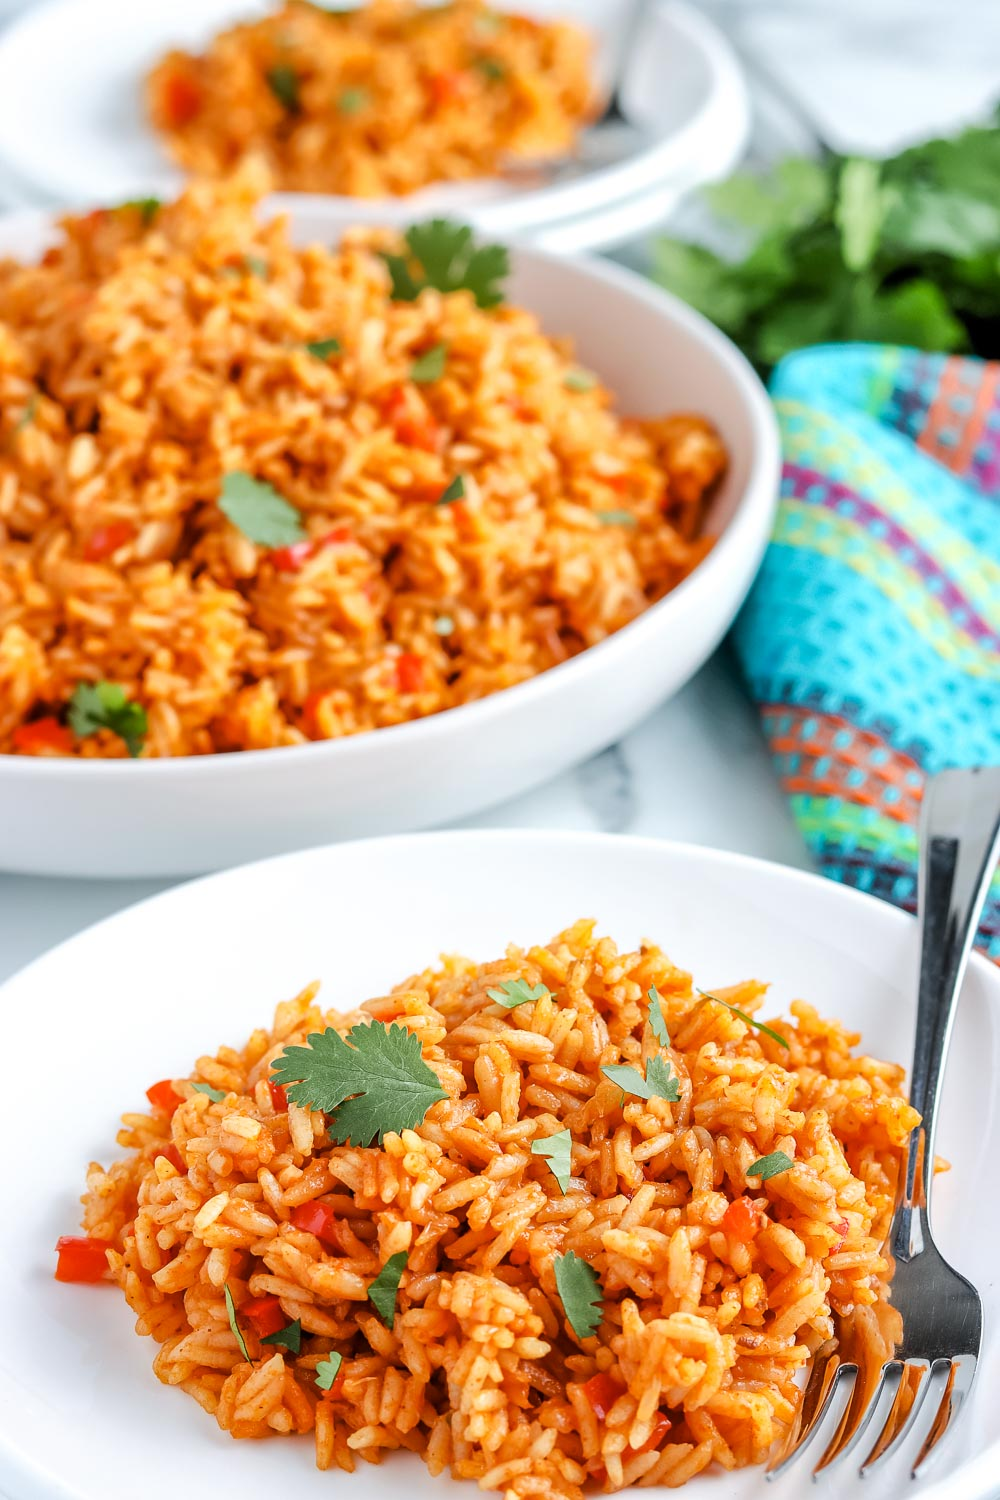 The finished Mexican Rice recipe on a white plate.